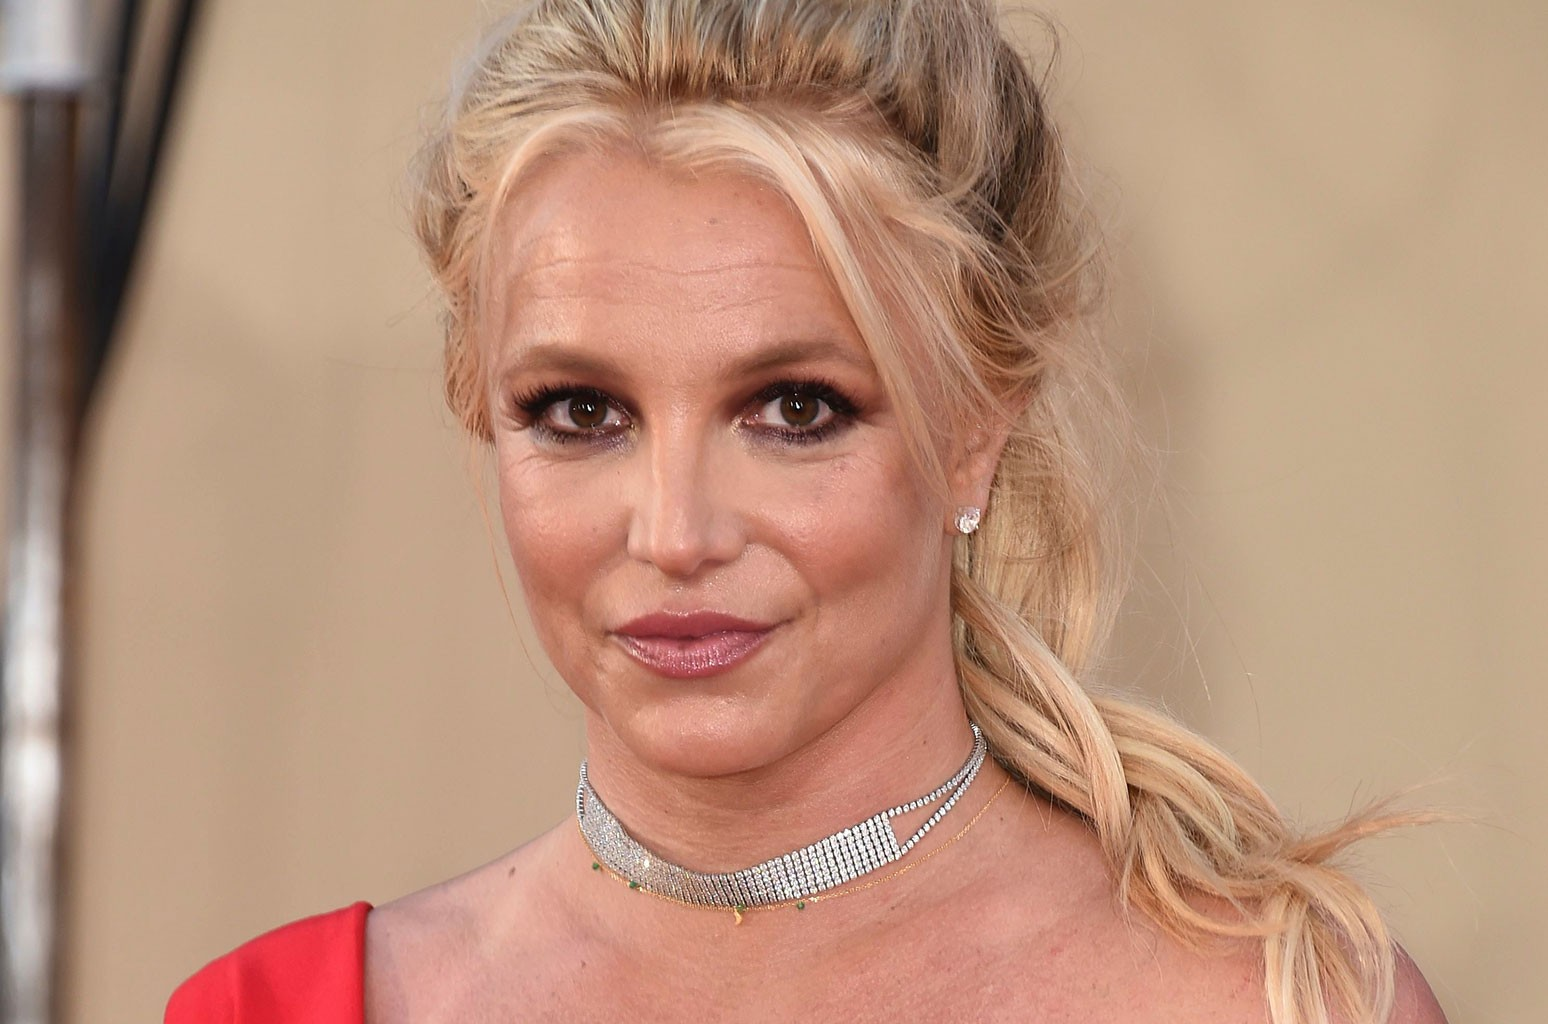 britney-spears-confesses-shes-feeling-overwhelmed-and-paints-her-stress-away-in-new-video